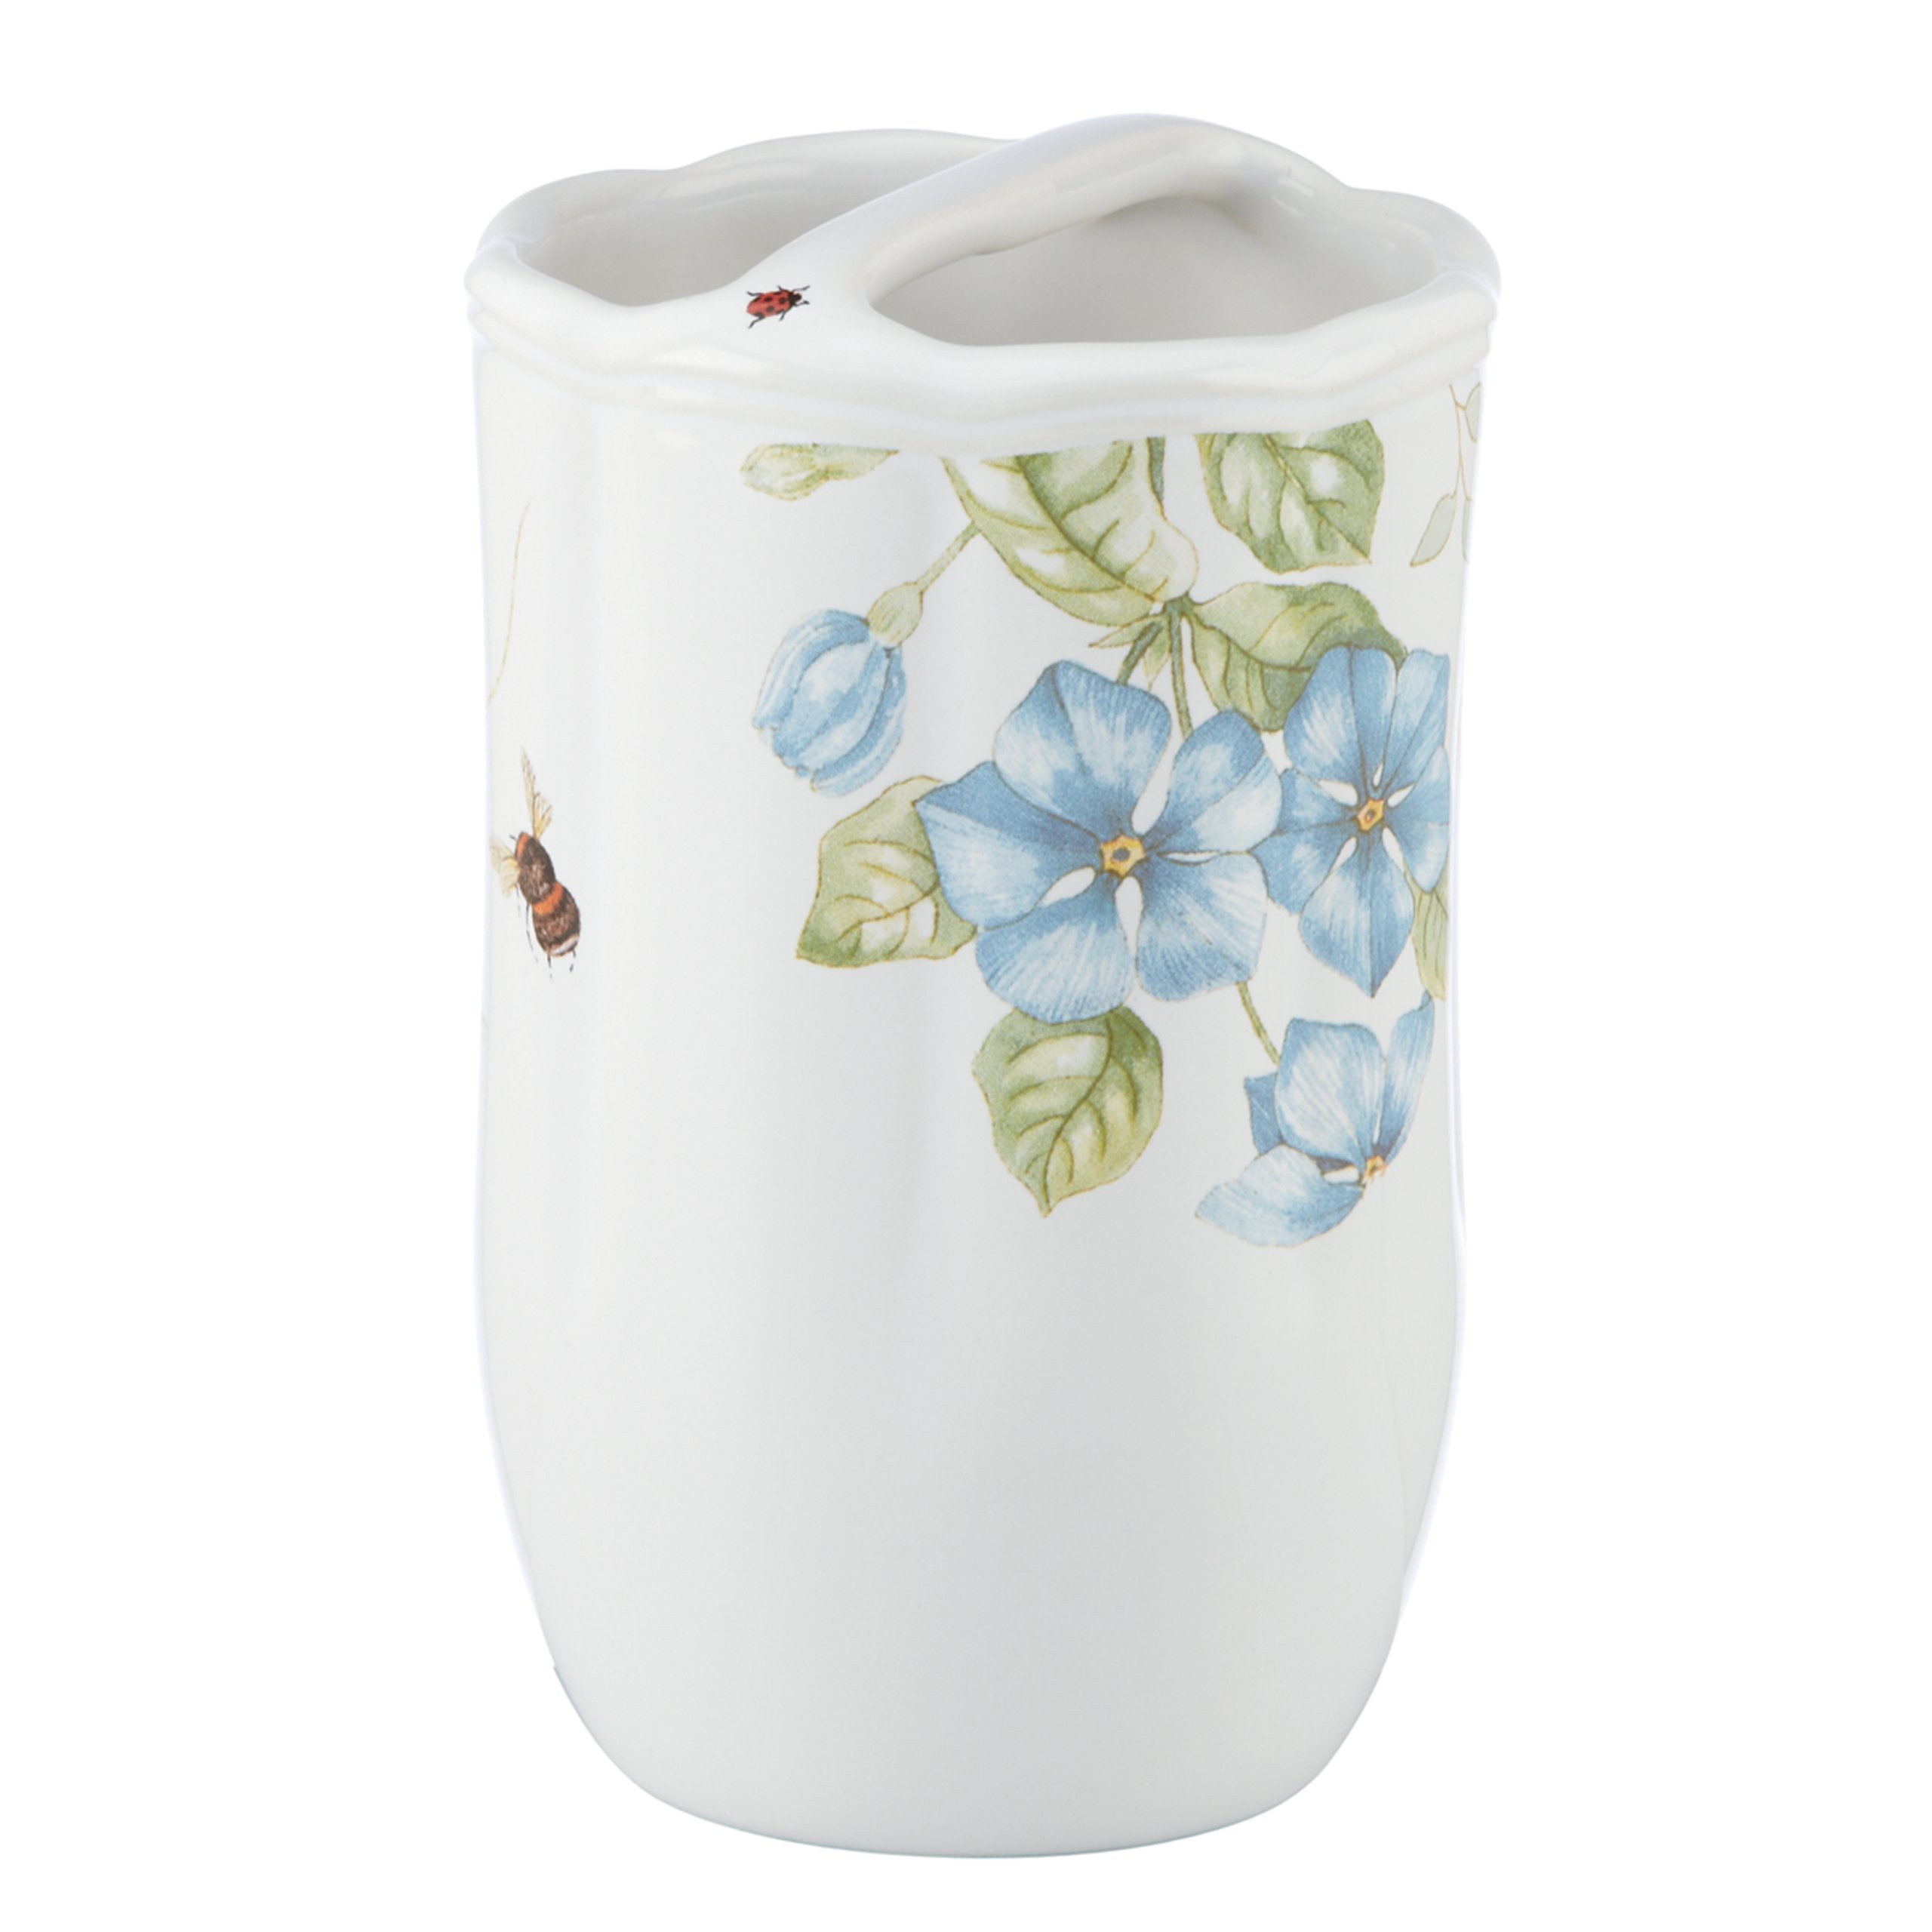 Butterfly Meadow Blue Toothbrush Holder by Lenox by Lenox (Image #1)